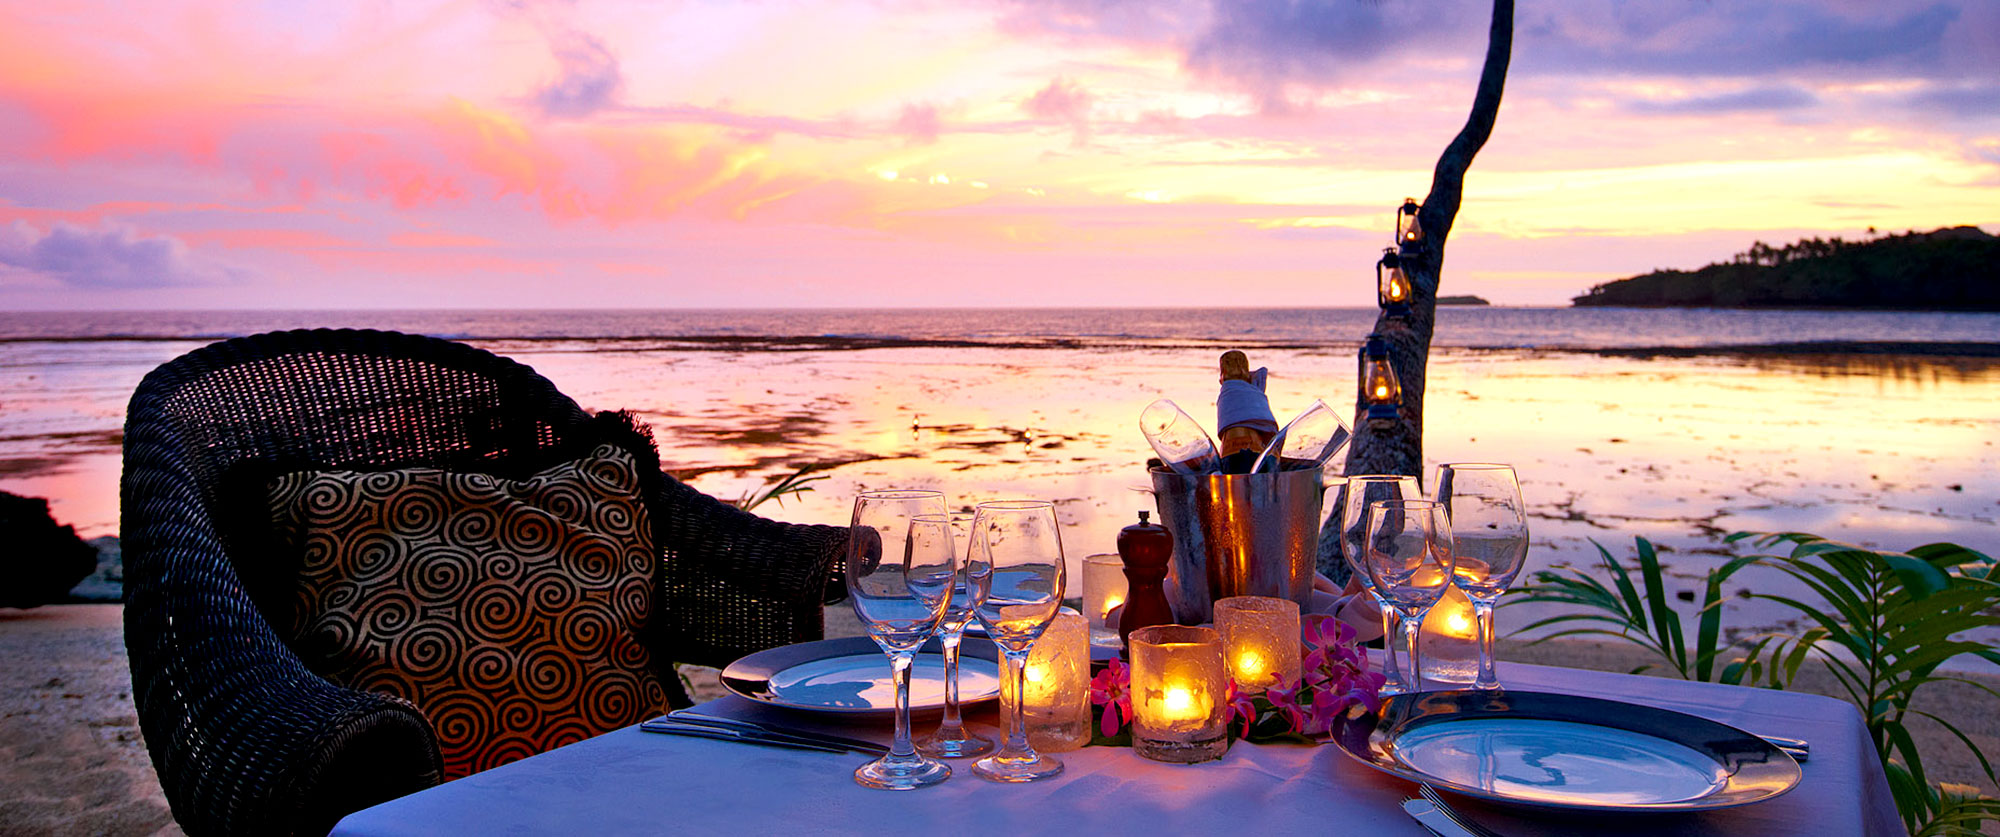 Fiji Honeymoon Island Escape - Namale Resort and Spa